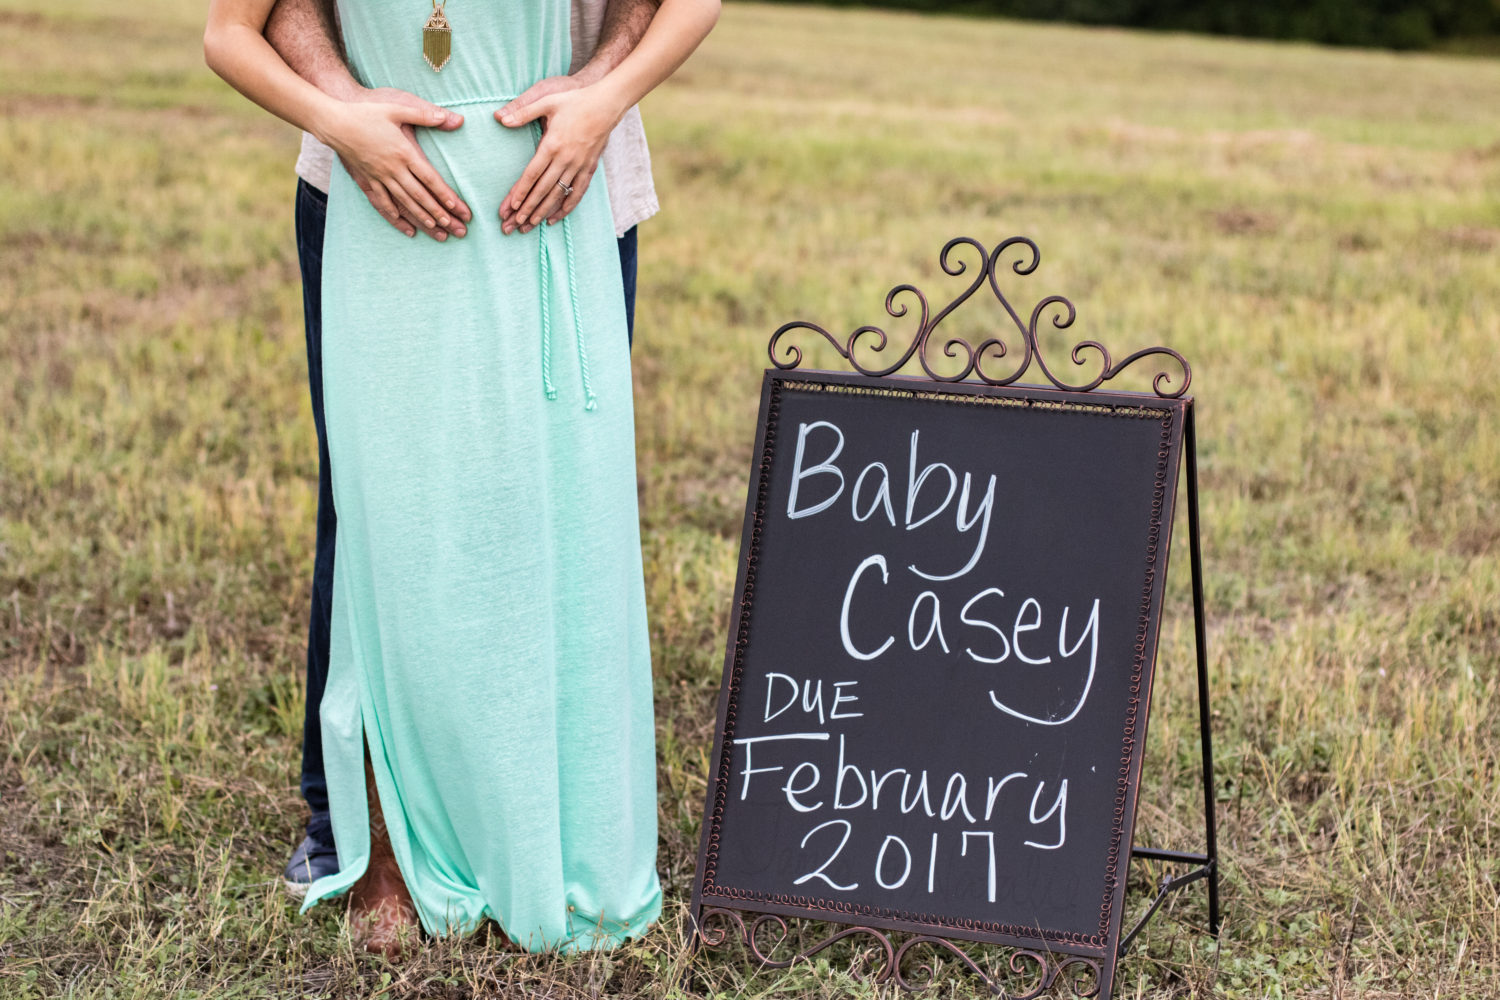 Baby Casey Announcement 2017